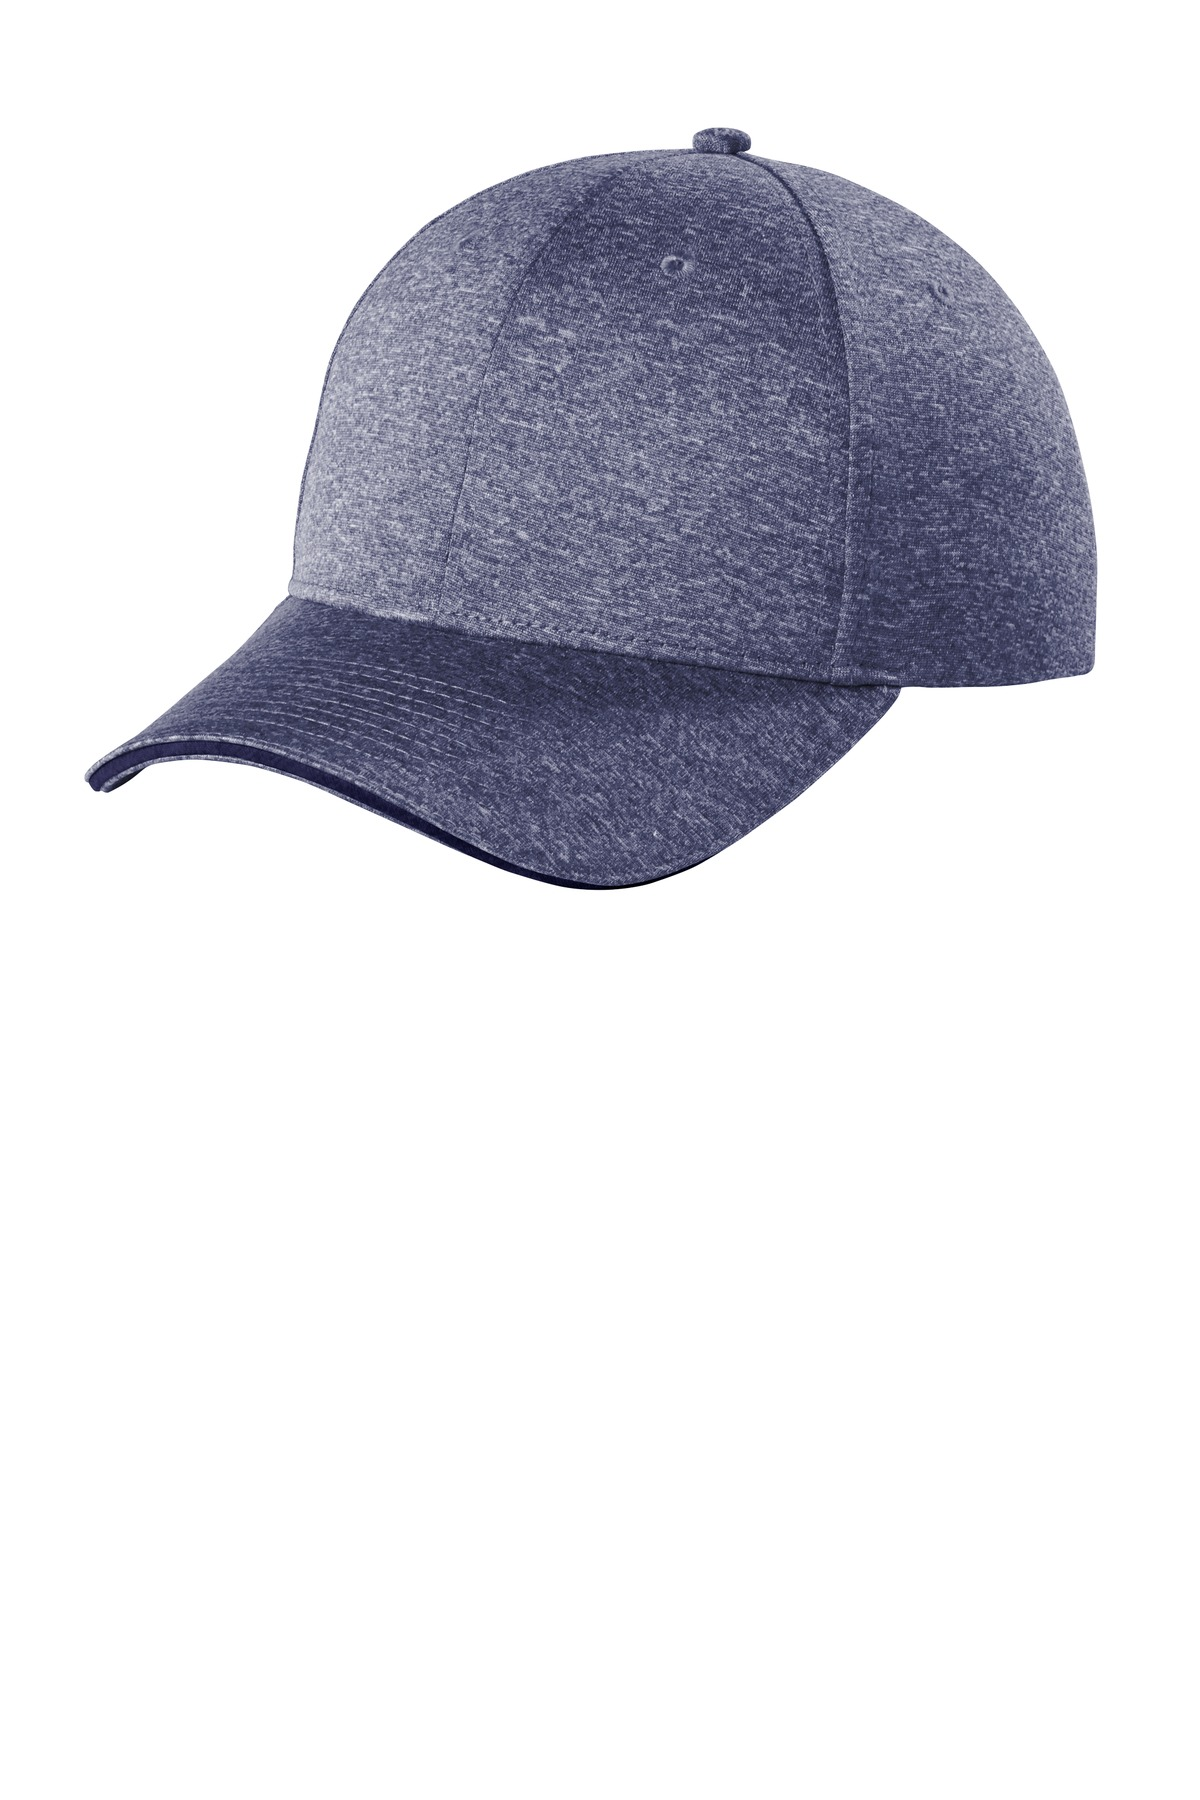 Sport-Tek  ®  Contender  ™  Snapback Cap. STC44 - True Navy Heather/ True Navy